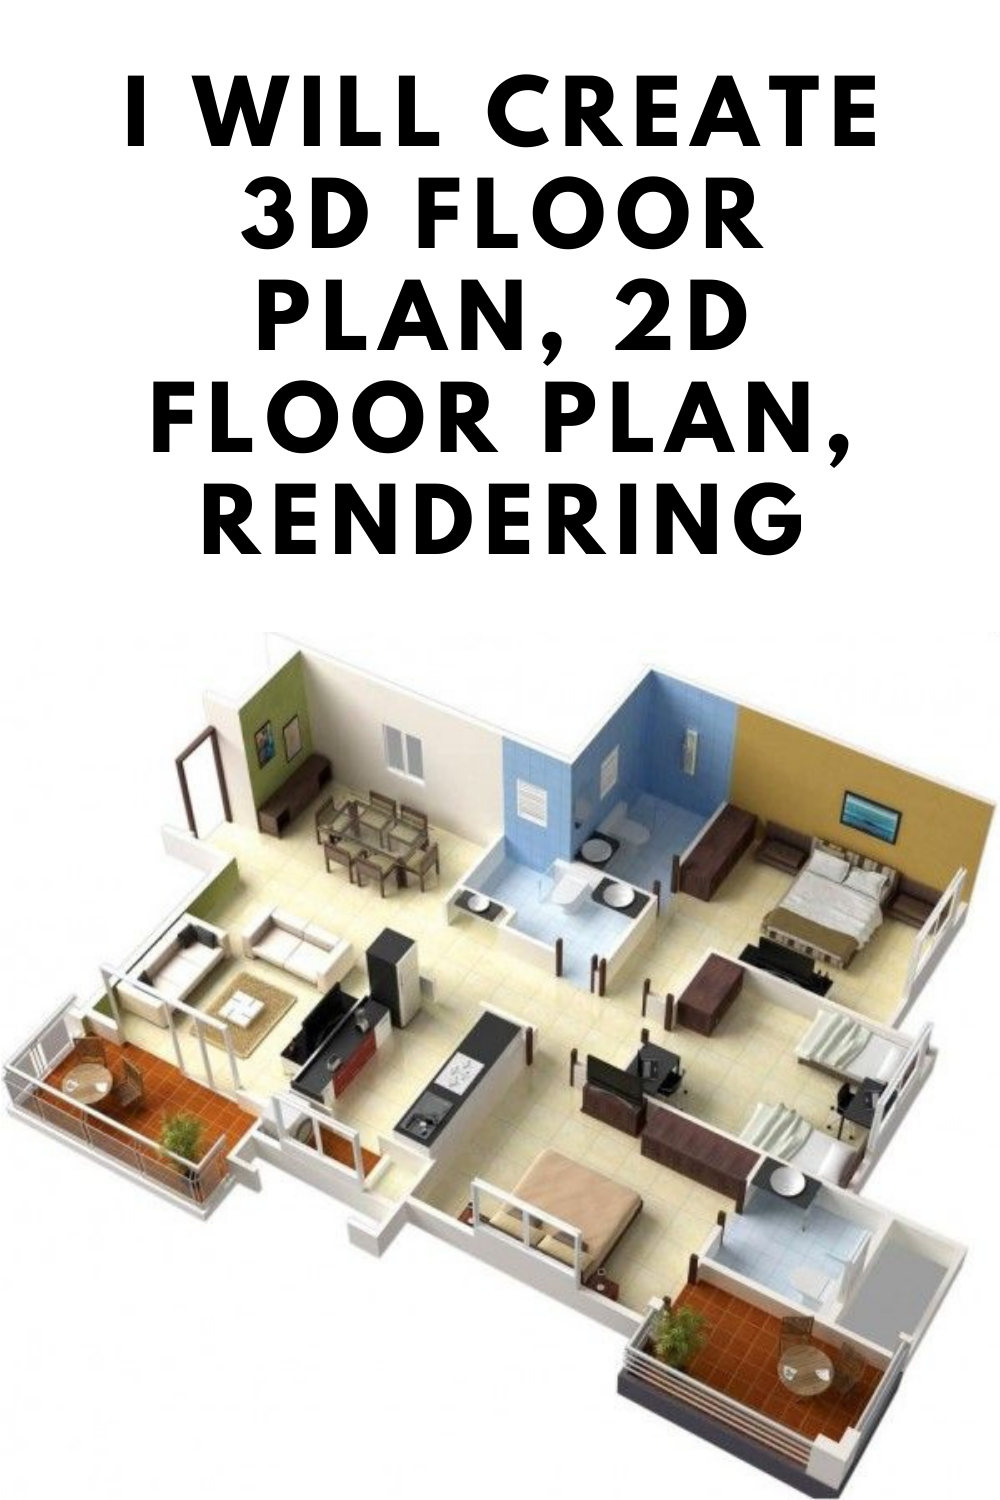 I Will Create 3d Floor Plan 2d Floor Plan Rendering Floorplans Dream Home Plans Floor Plan Diy House Plans Floor Plans Open Floor House Plans